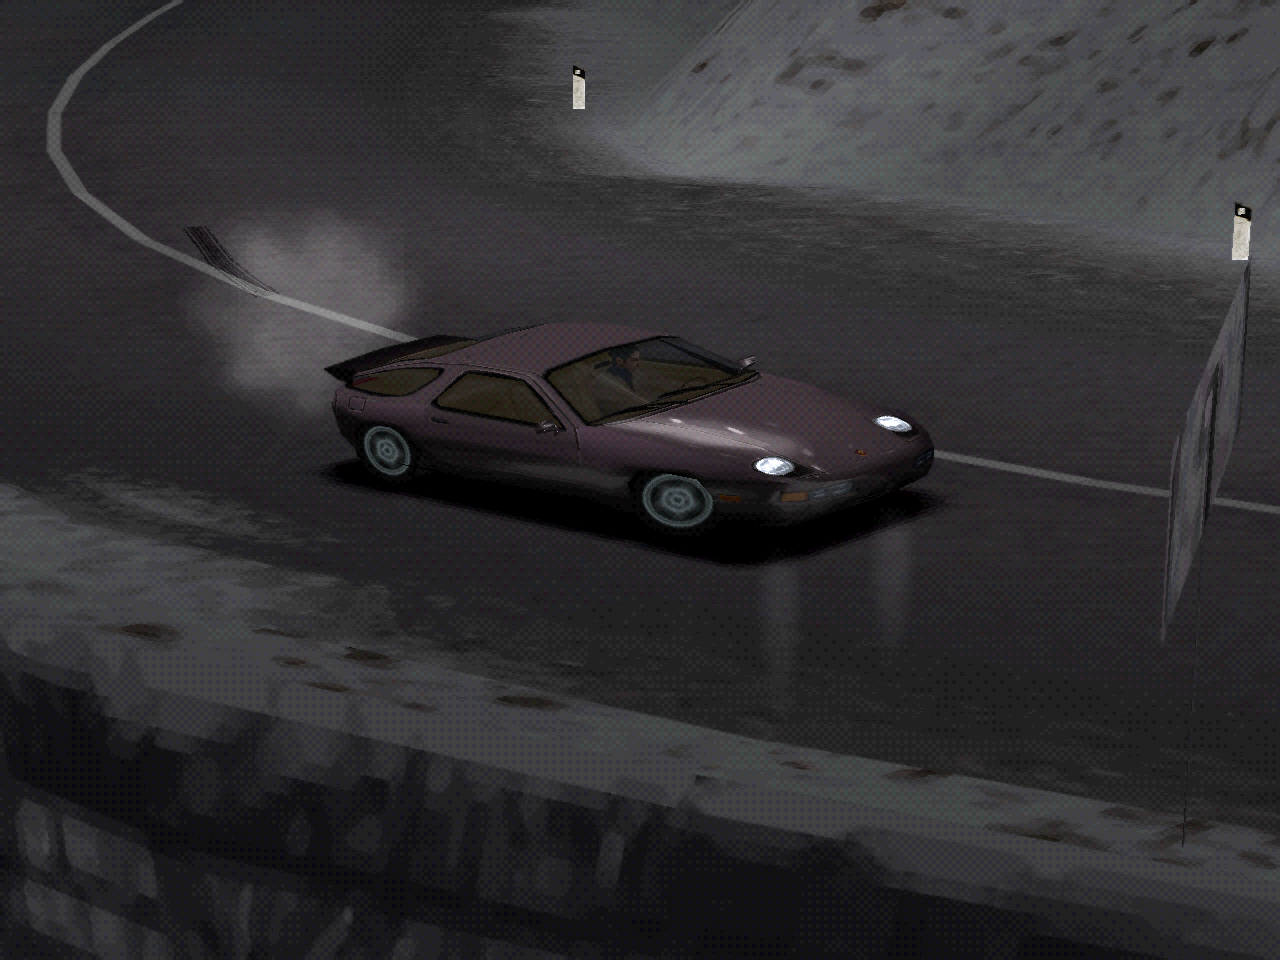 3d6ae8cce04555ce09852f8d22be8102.png